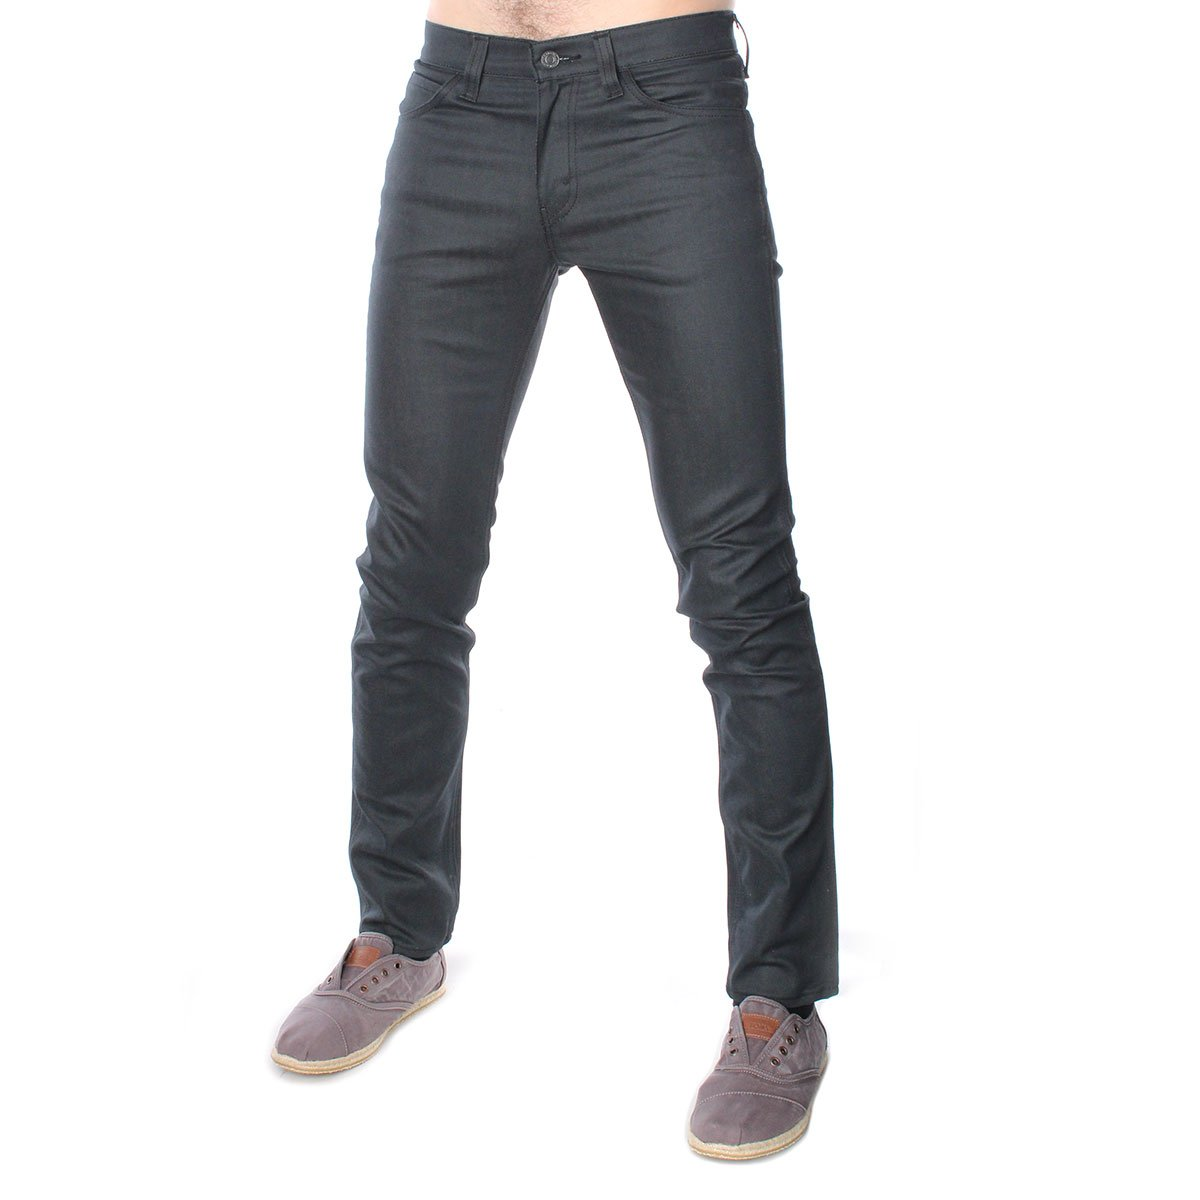 levis monochrome 510 jeans levis from the menswear site uk